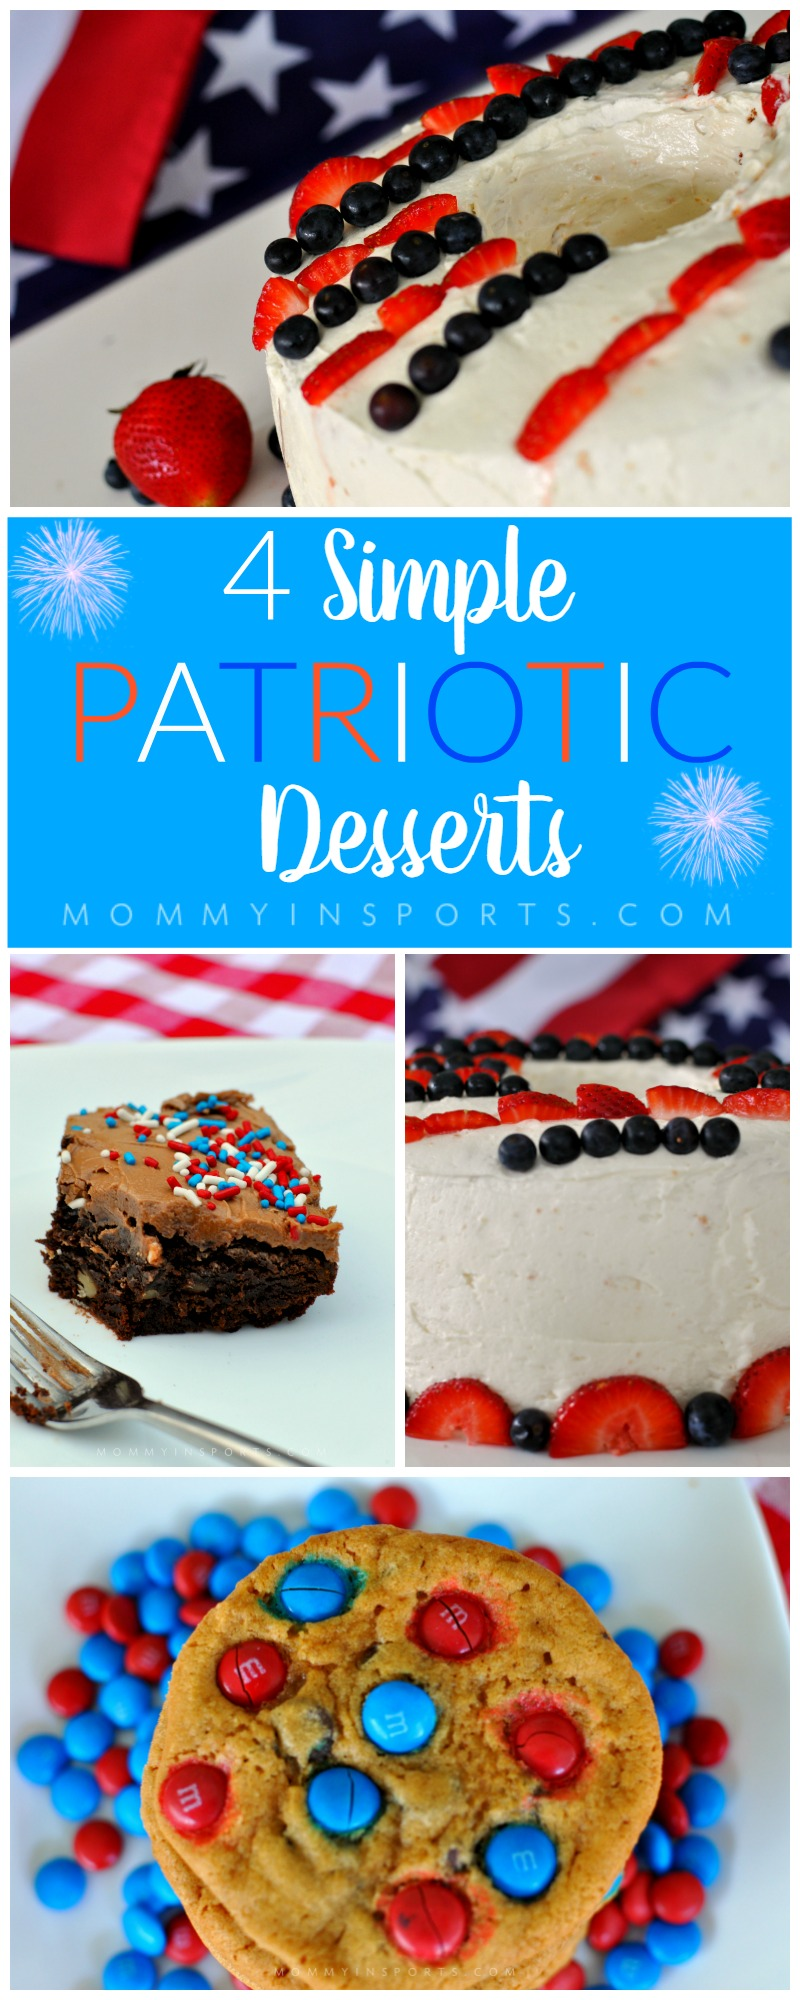 Looking to honor the USA with some sweet treats? Try these simple yet delicious desserts that will wow your crowds and won't take hours to bake!